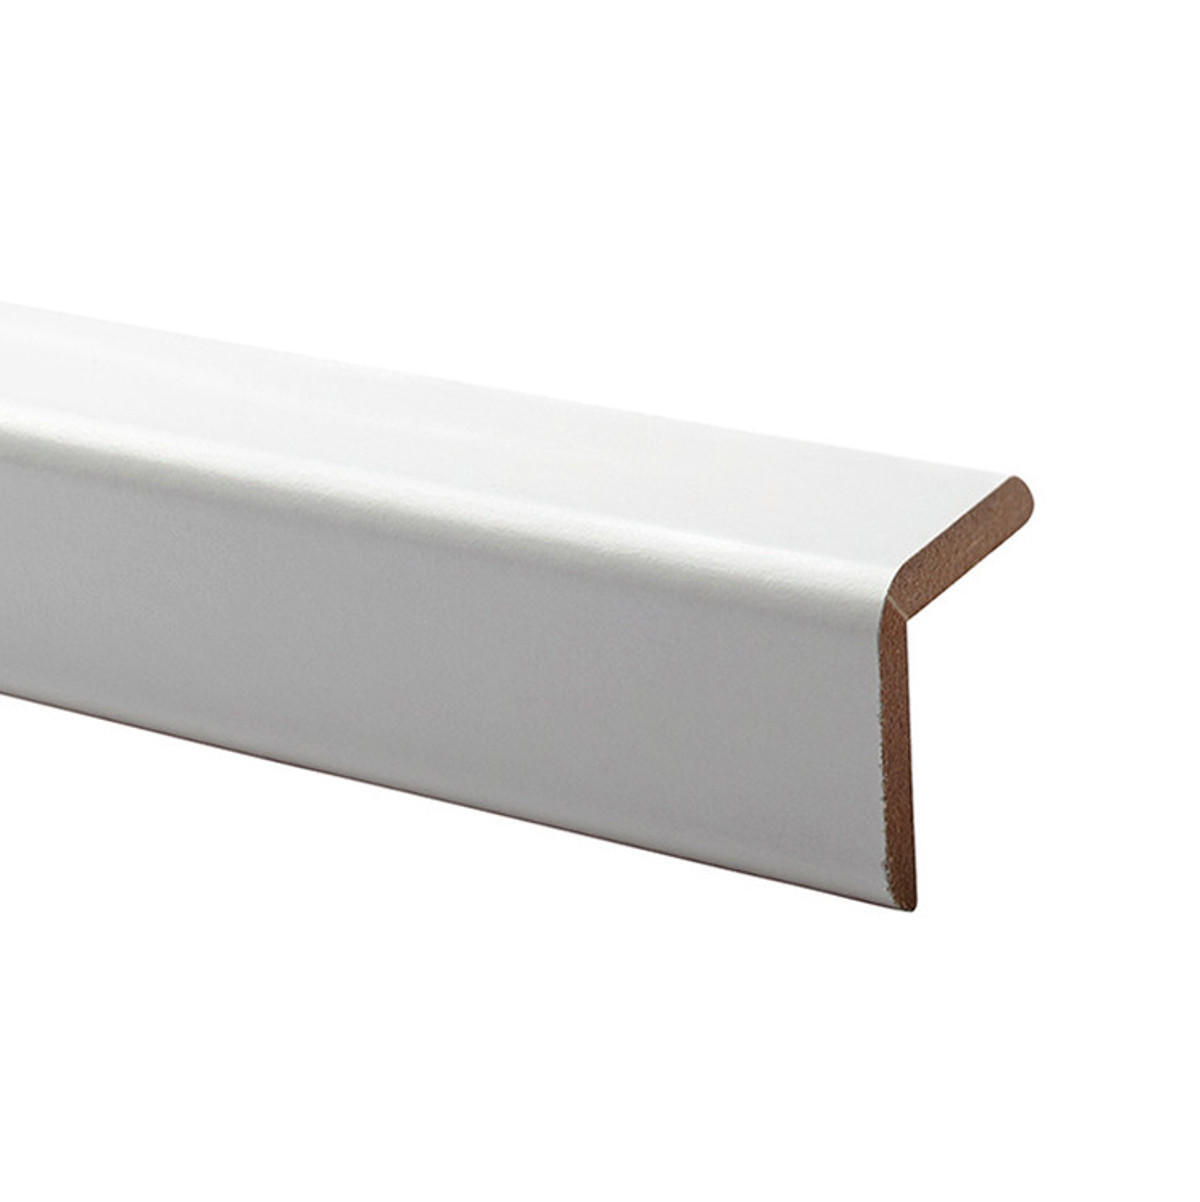 Paraspigolo in mdf bianco 3 m x 28 mm, Sp 28 mm